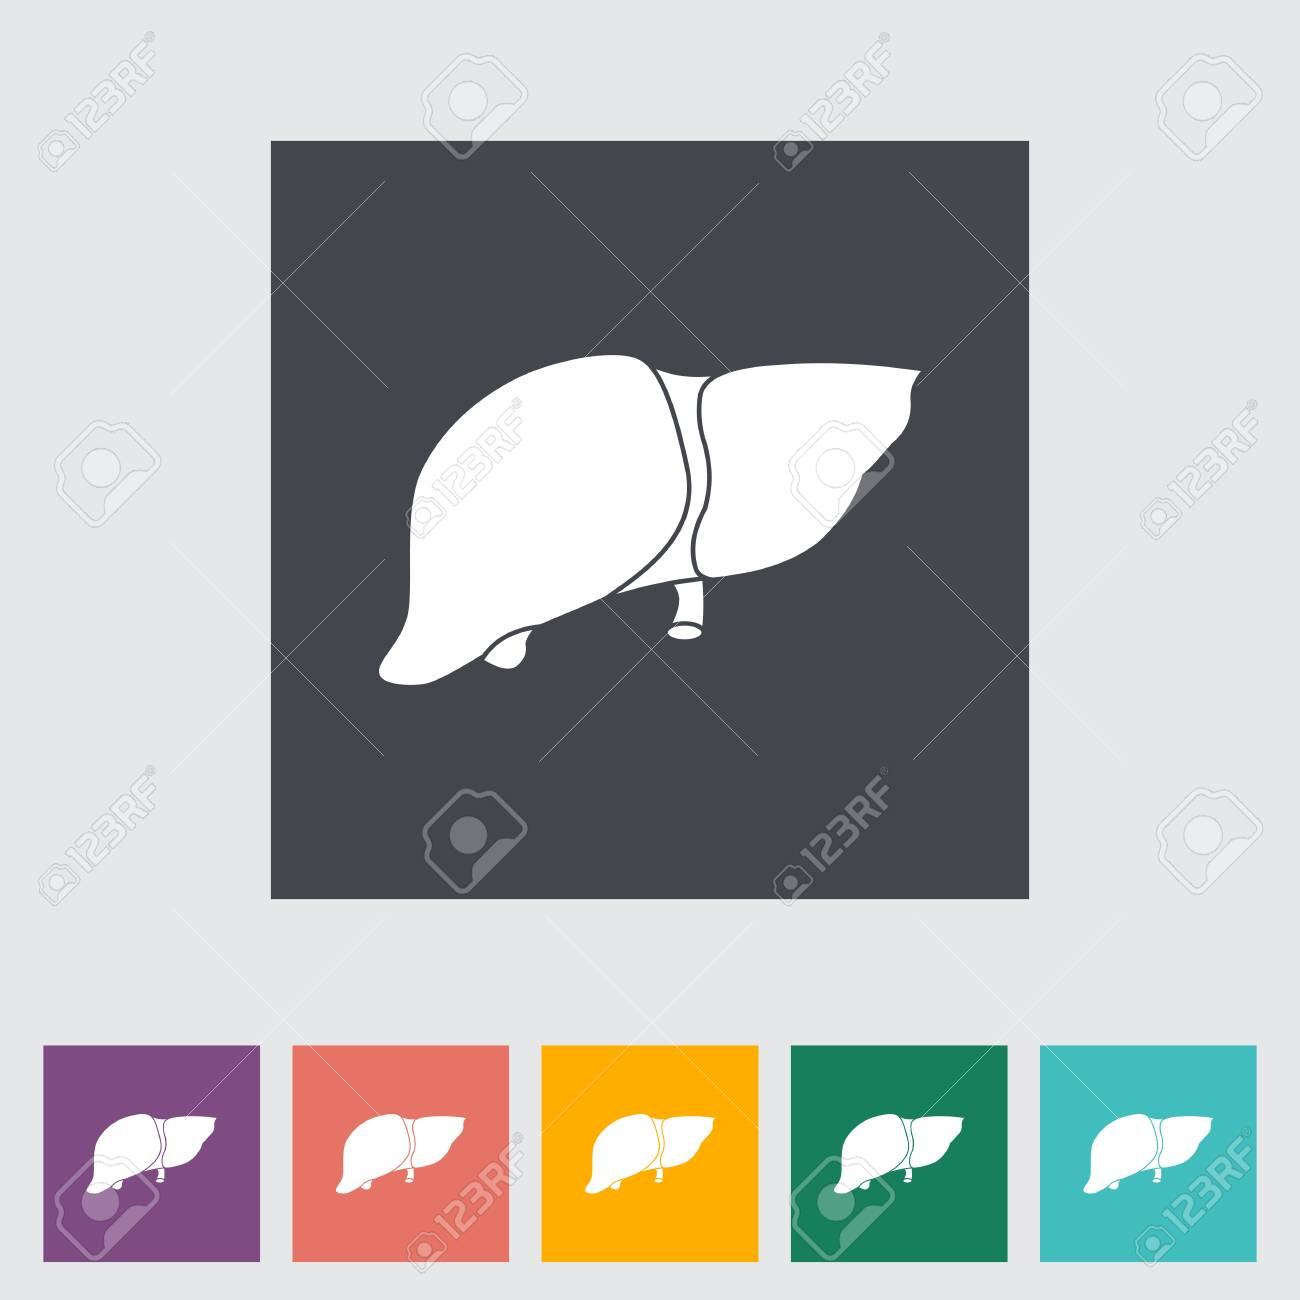 Liver flat icon illustration. Stock Vector - 21114822